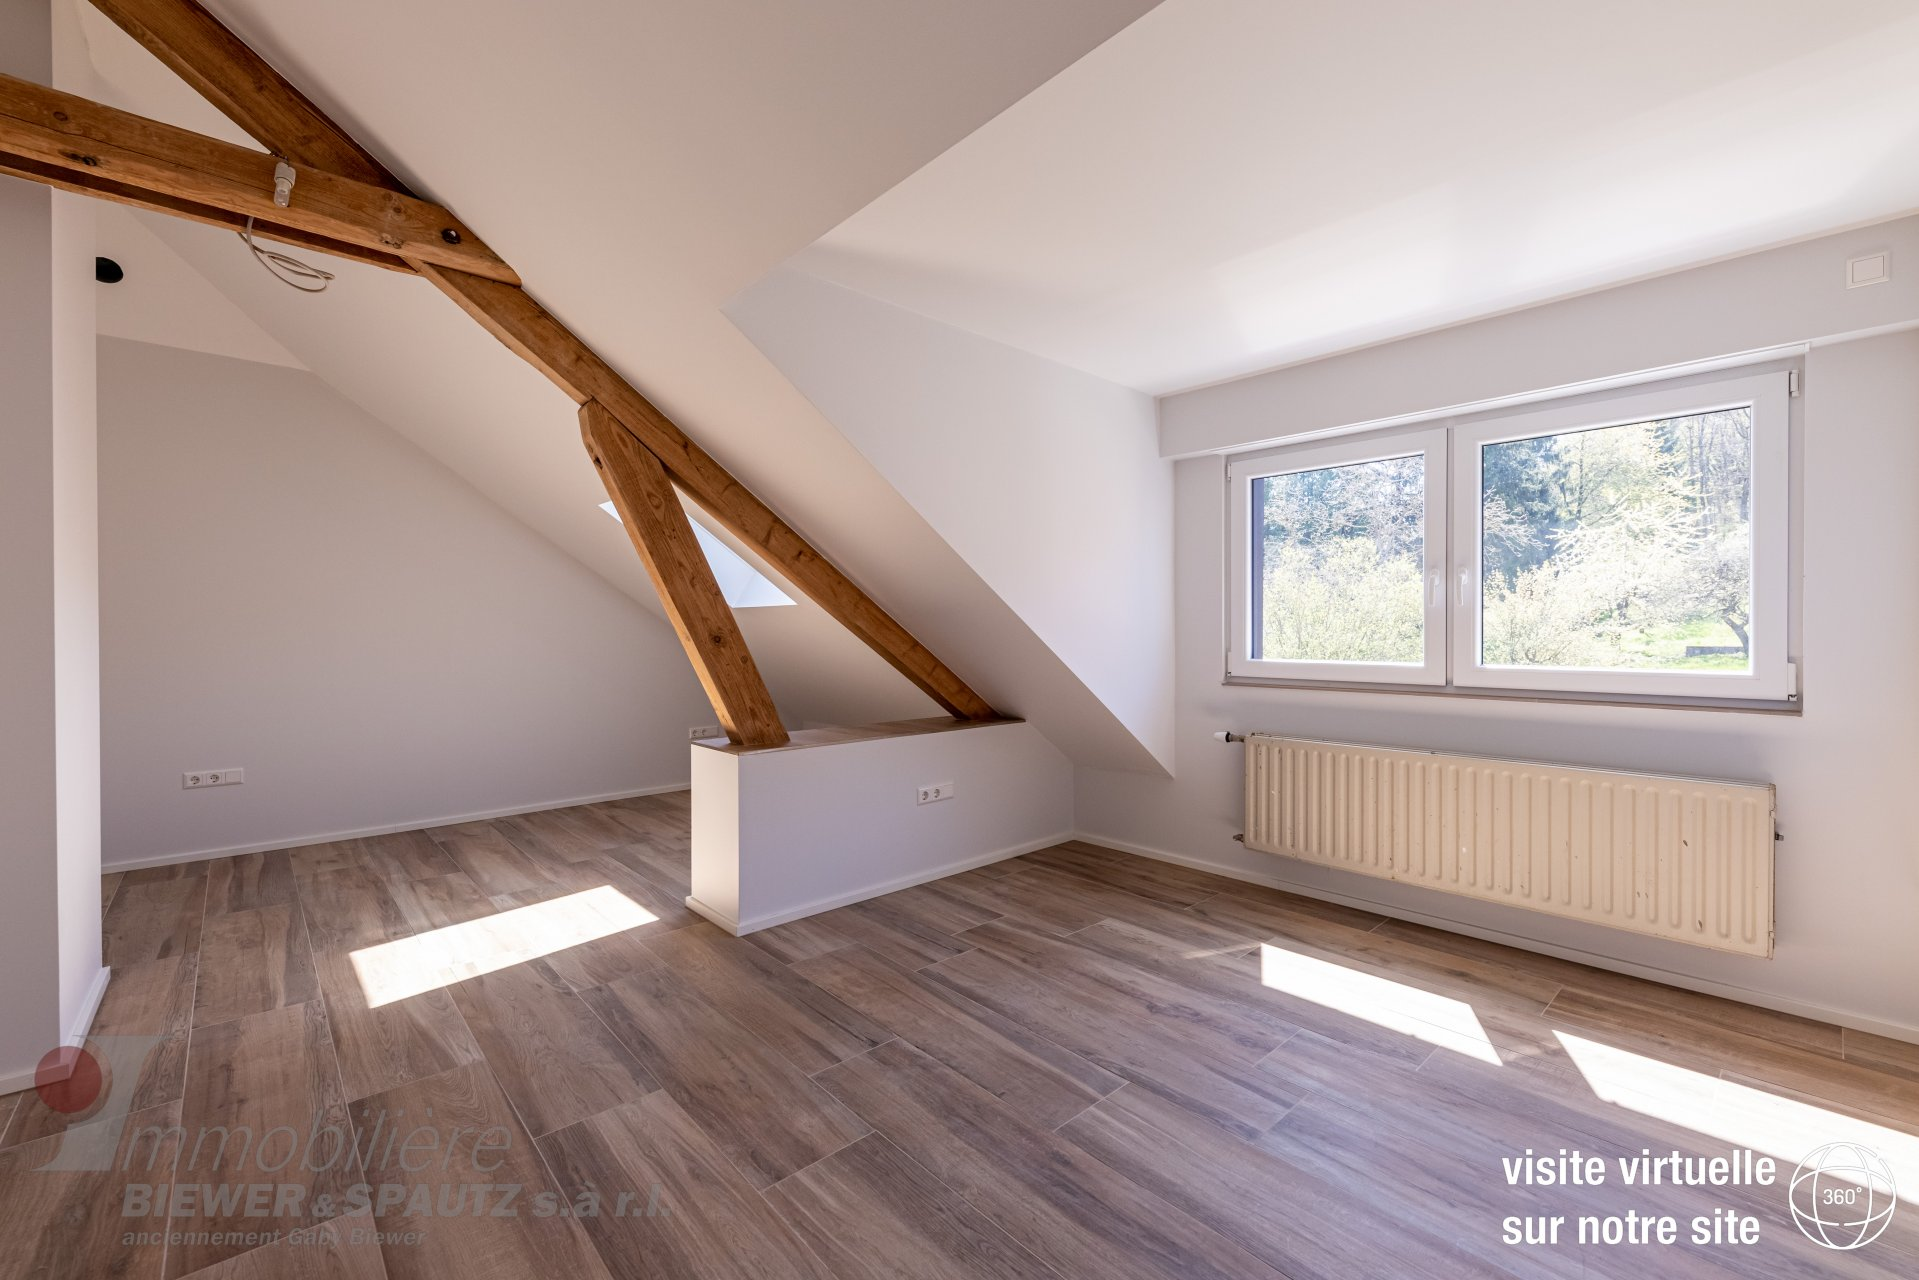 FOR RENT - Duplex with 3 bedrooms in Dudelange